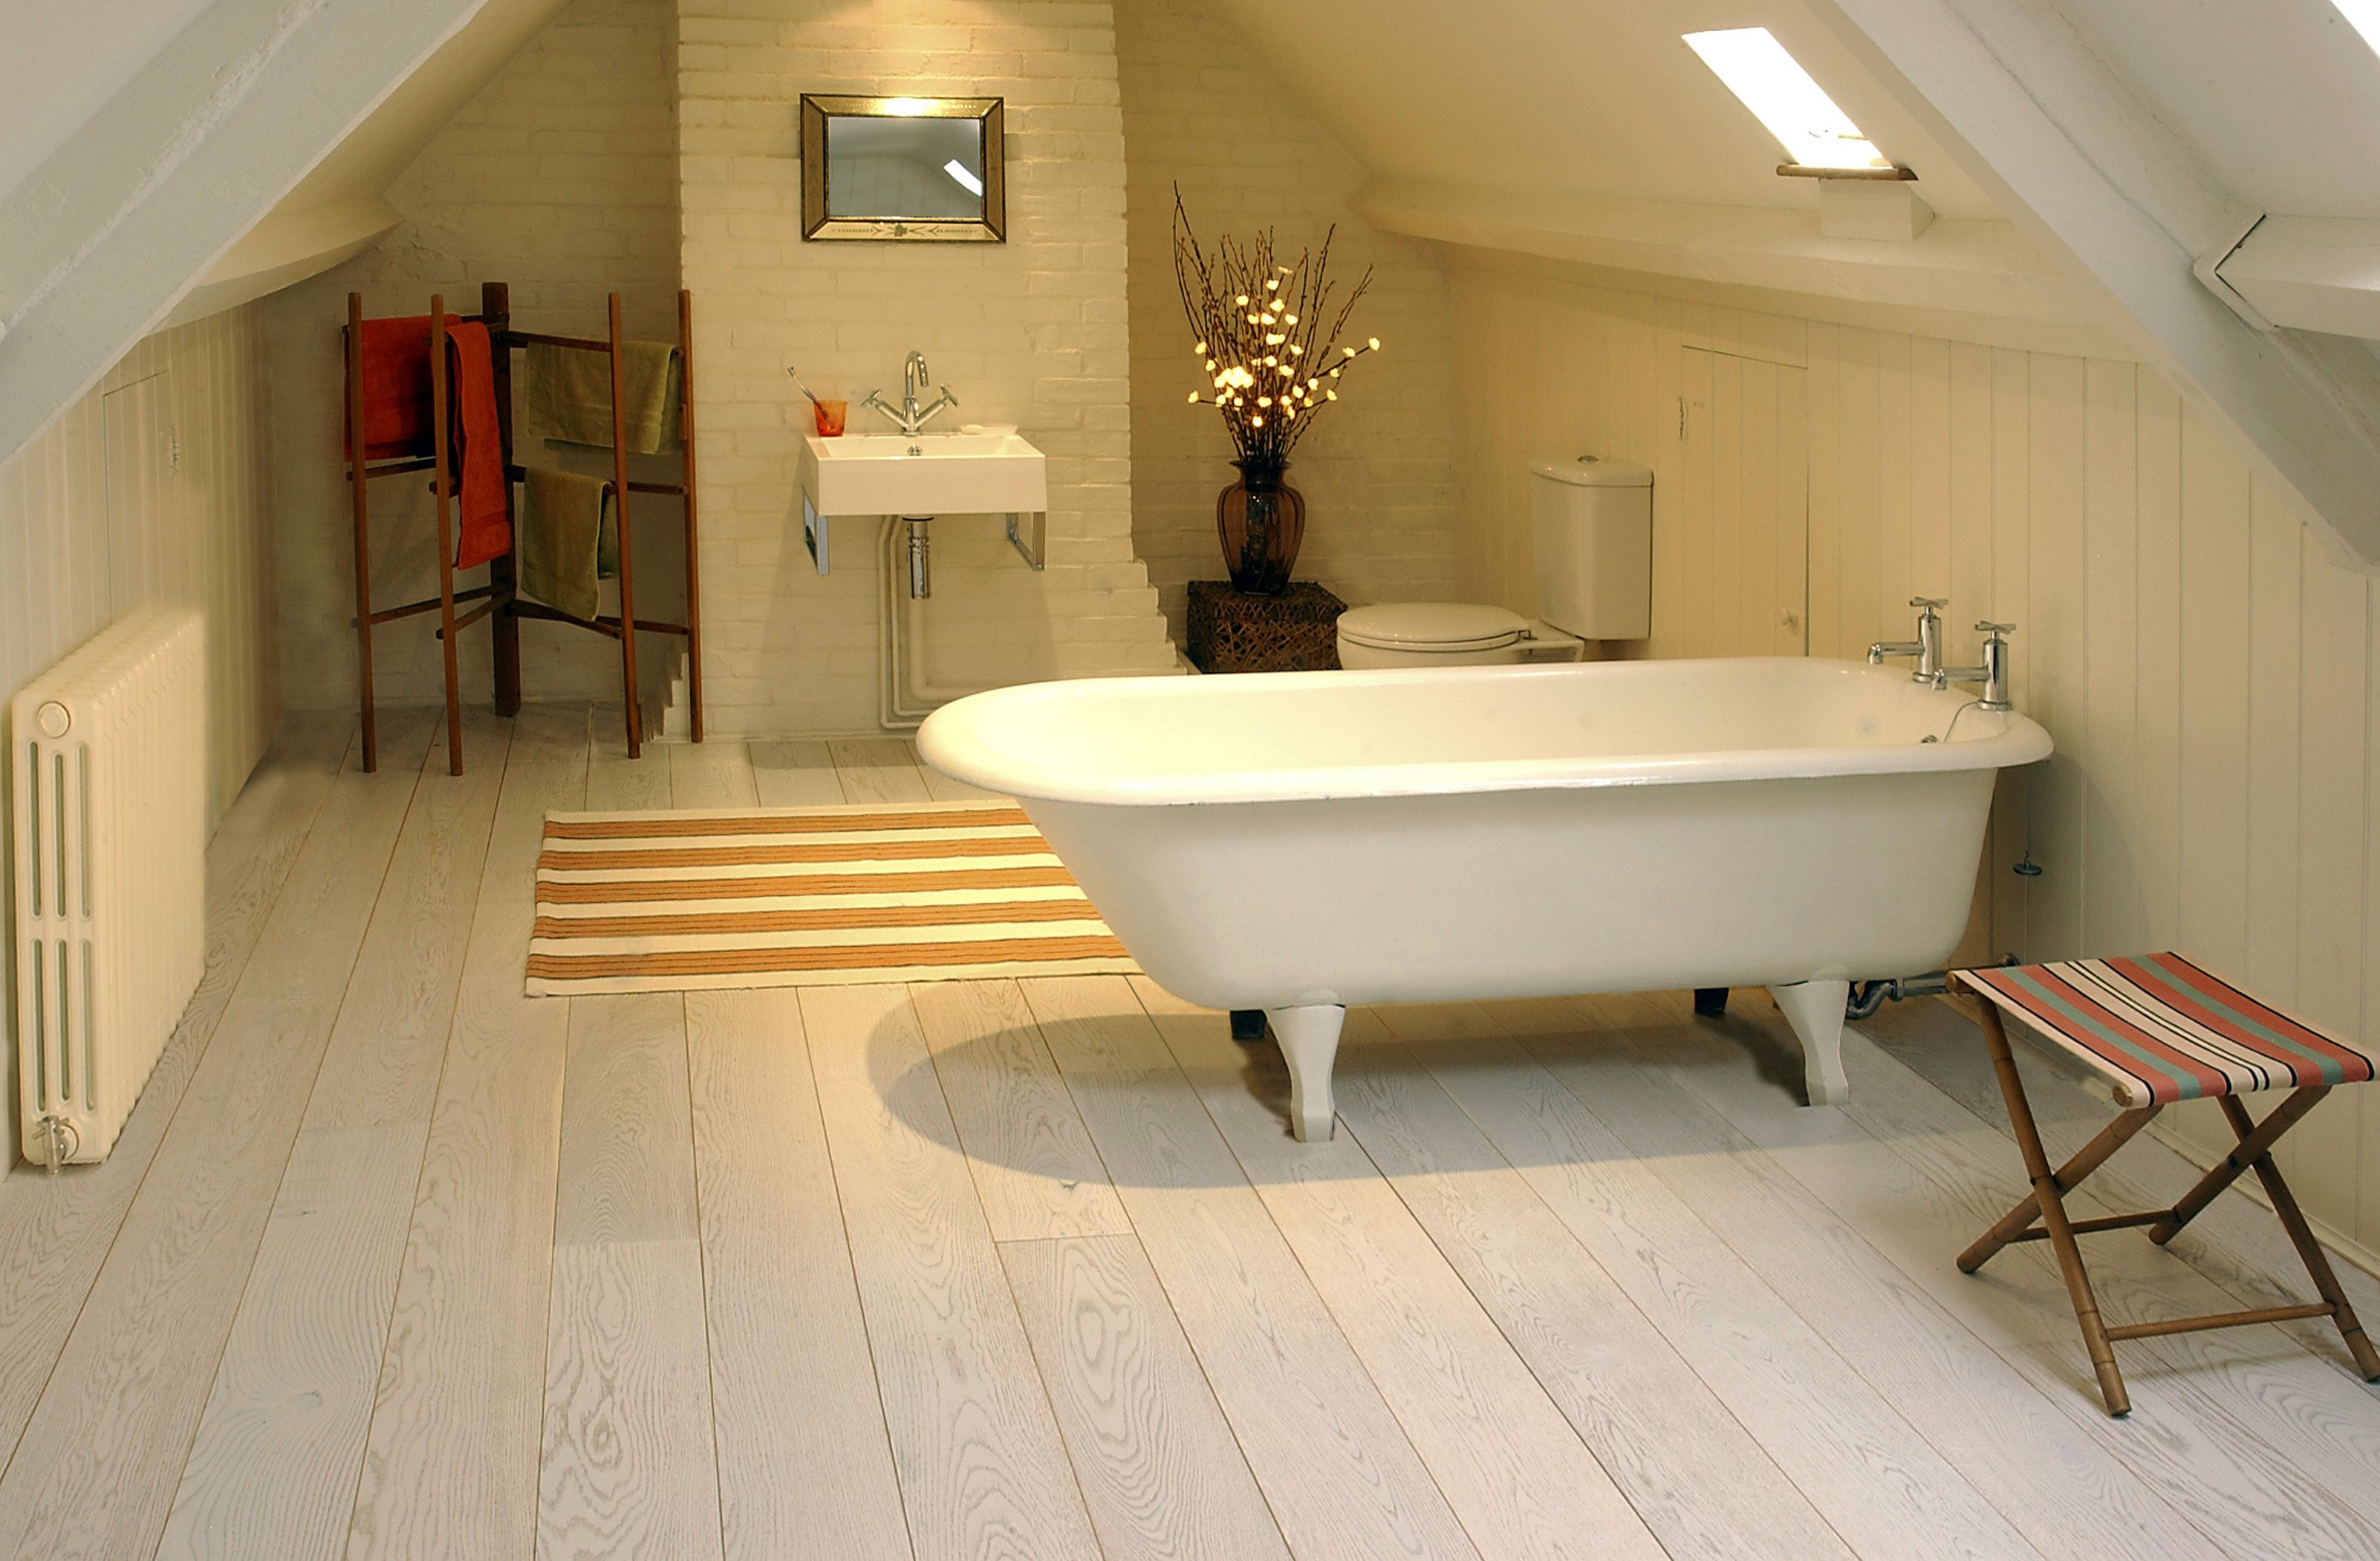 Wooden Flooring Ideas with Natural Bathroom Interior Design